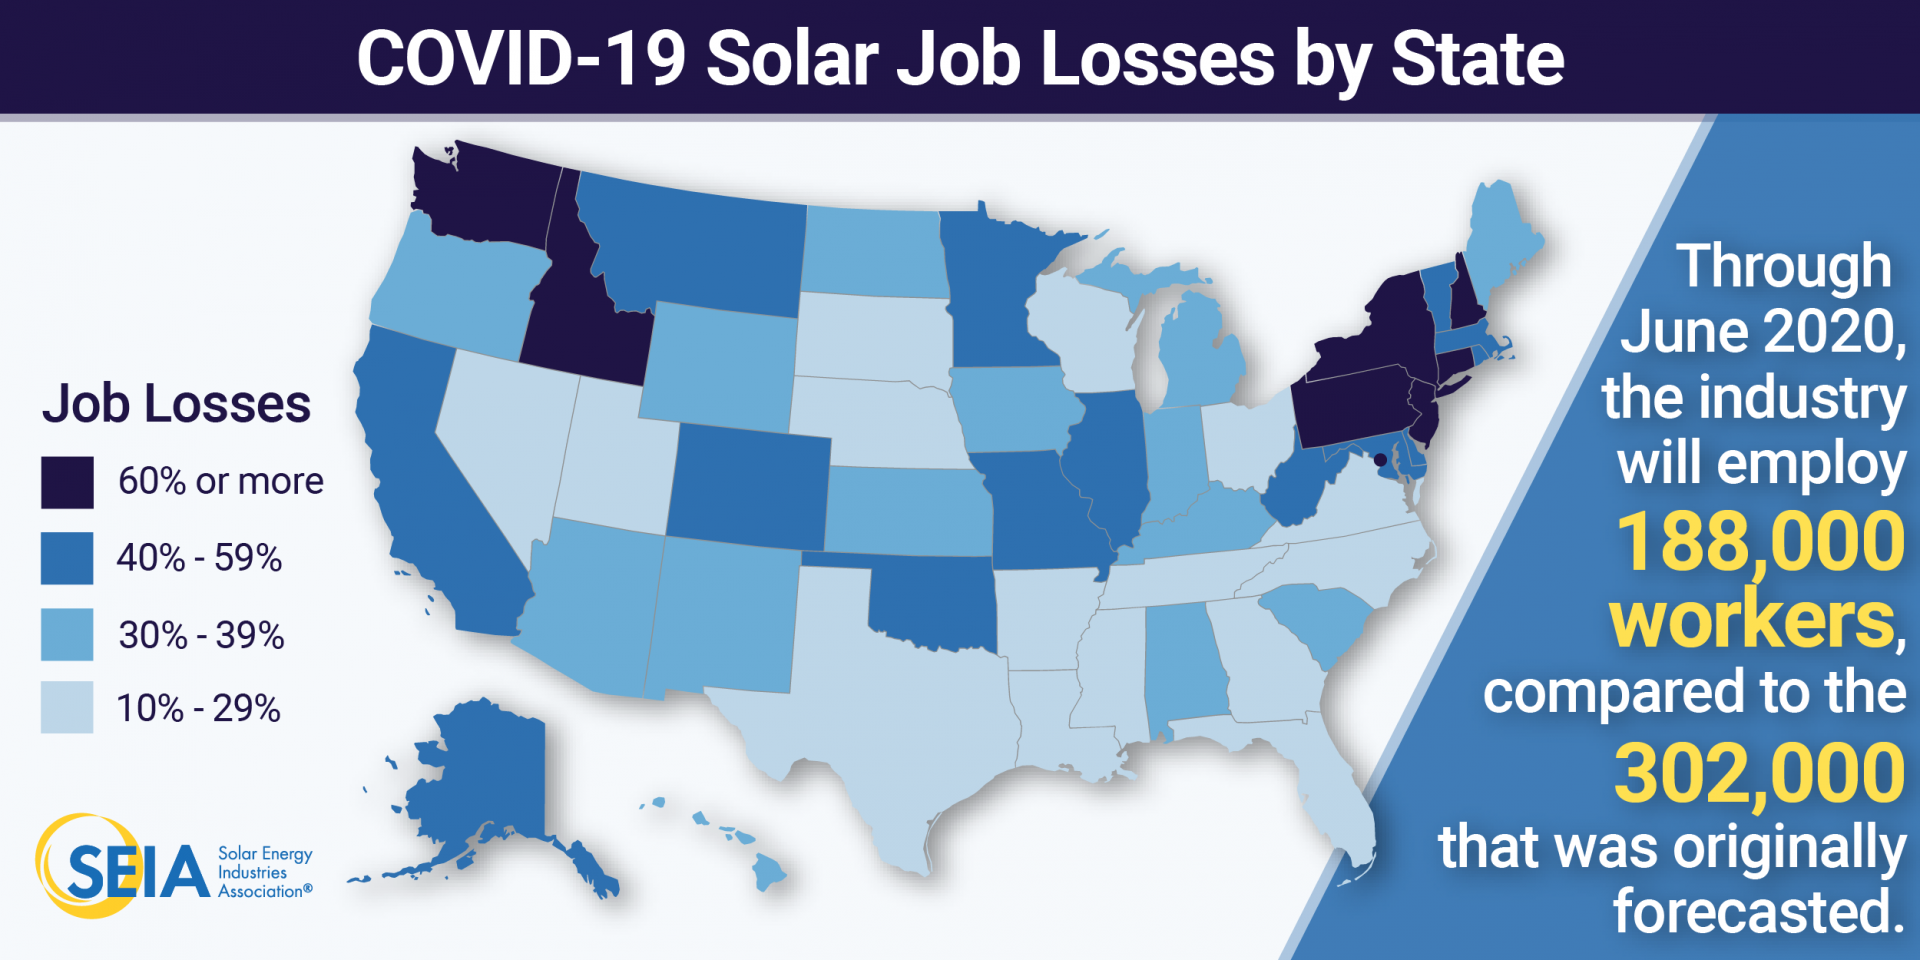 """US solar job cuts are coming """"at a faster rate"""" than for the broader US economy and will shrink the solar workforce to a size not seen since 2014, the SEIA said. Image credit: The SEIA"""